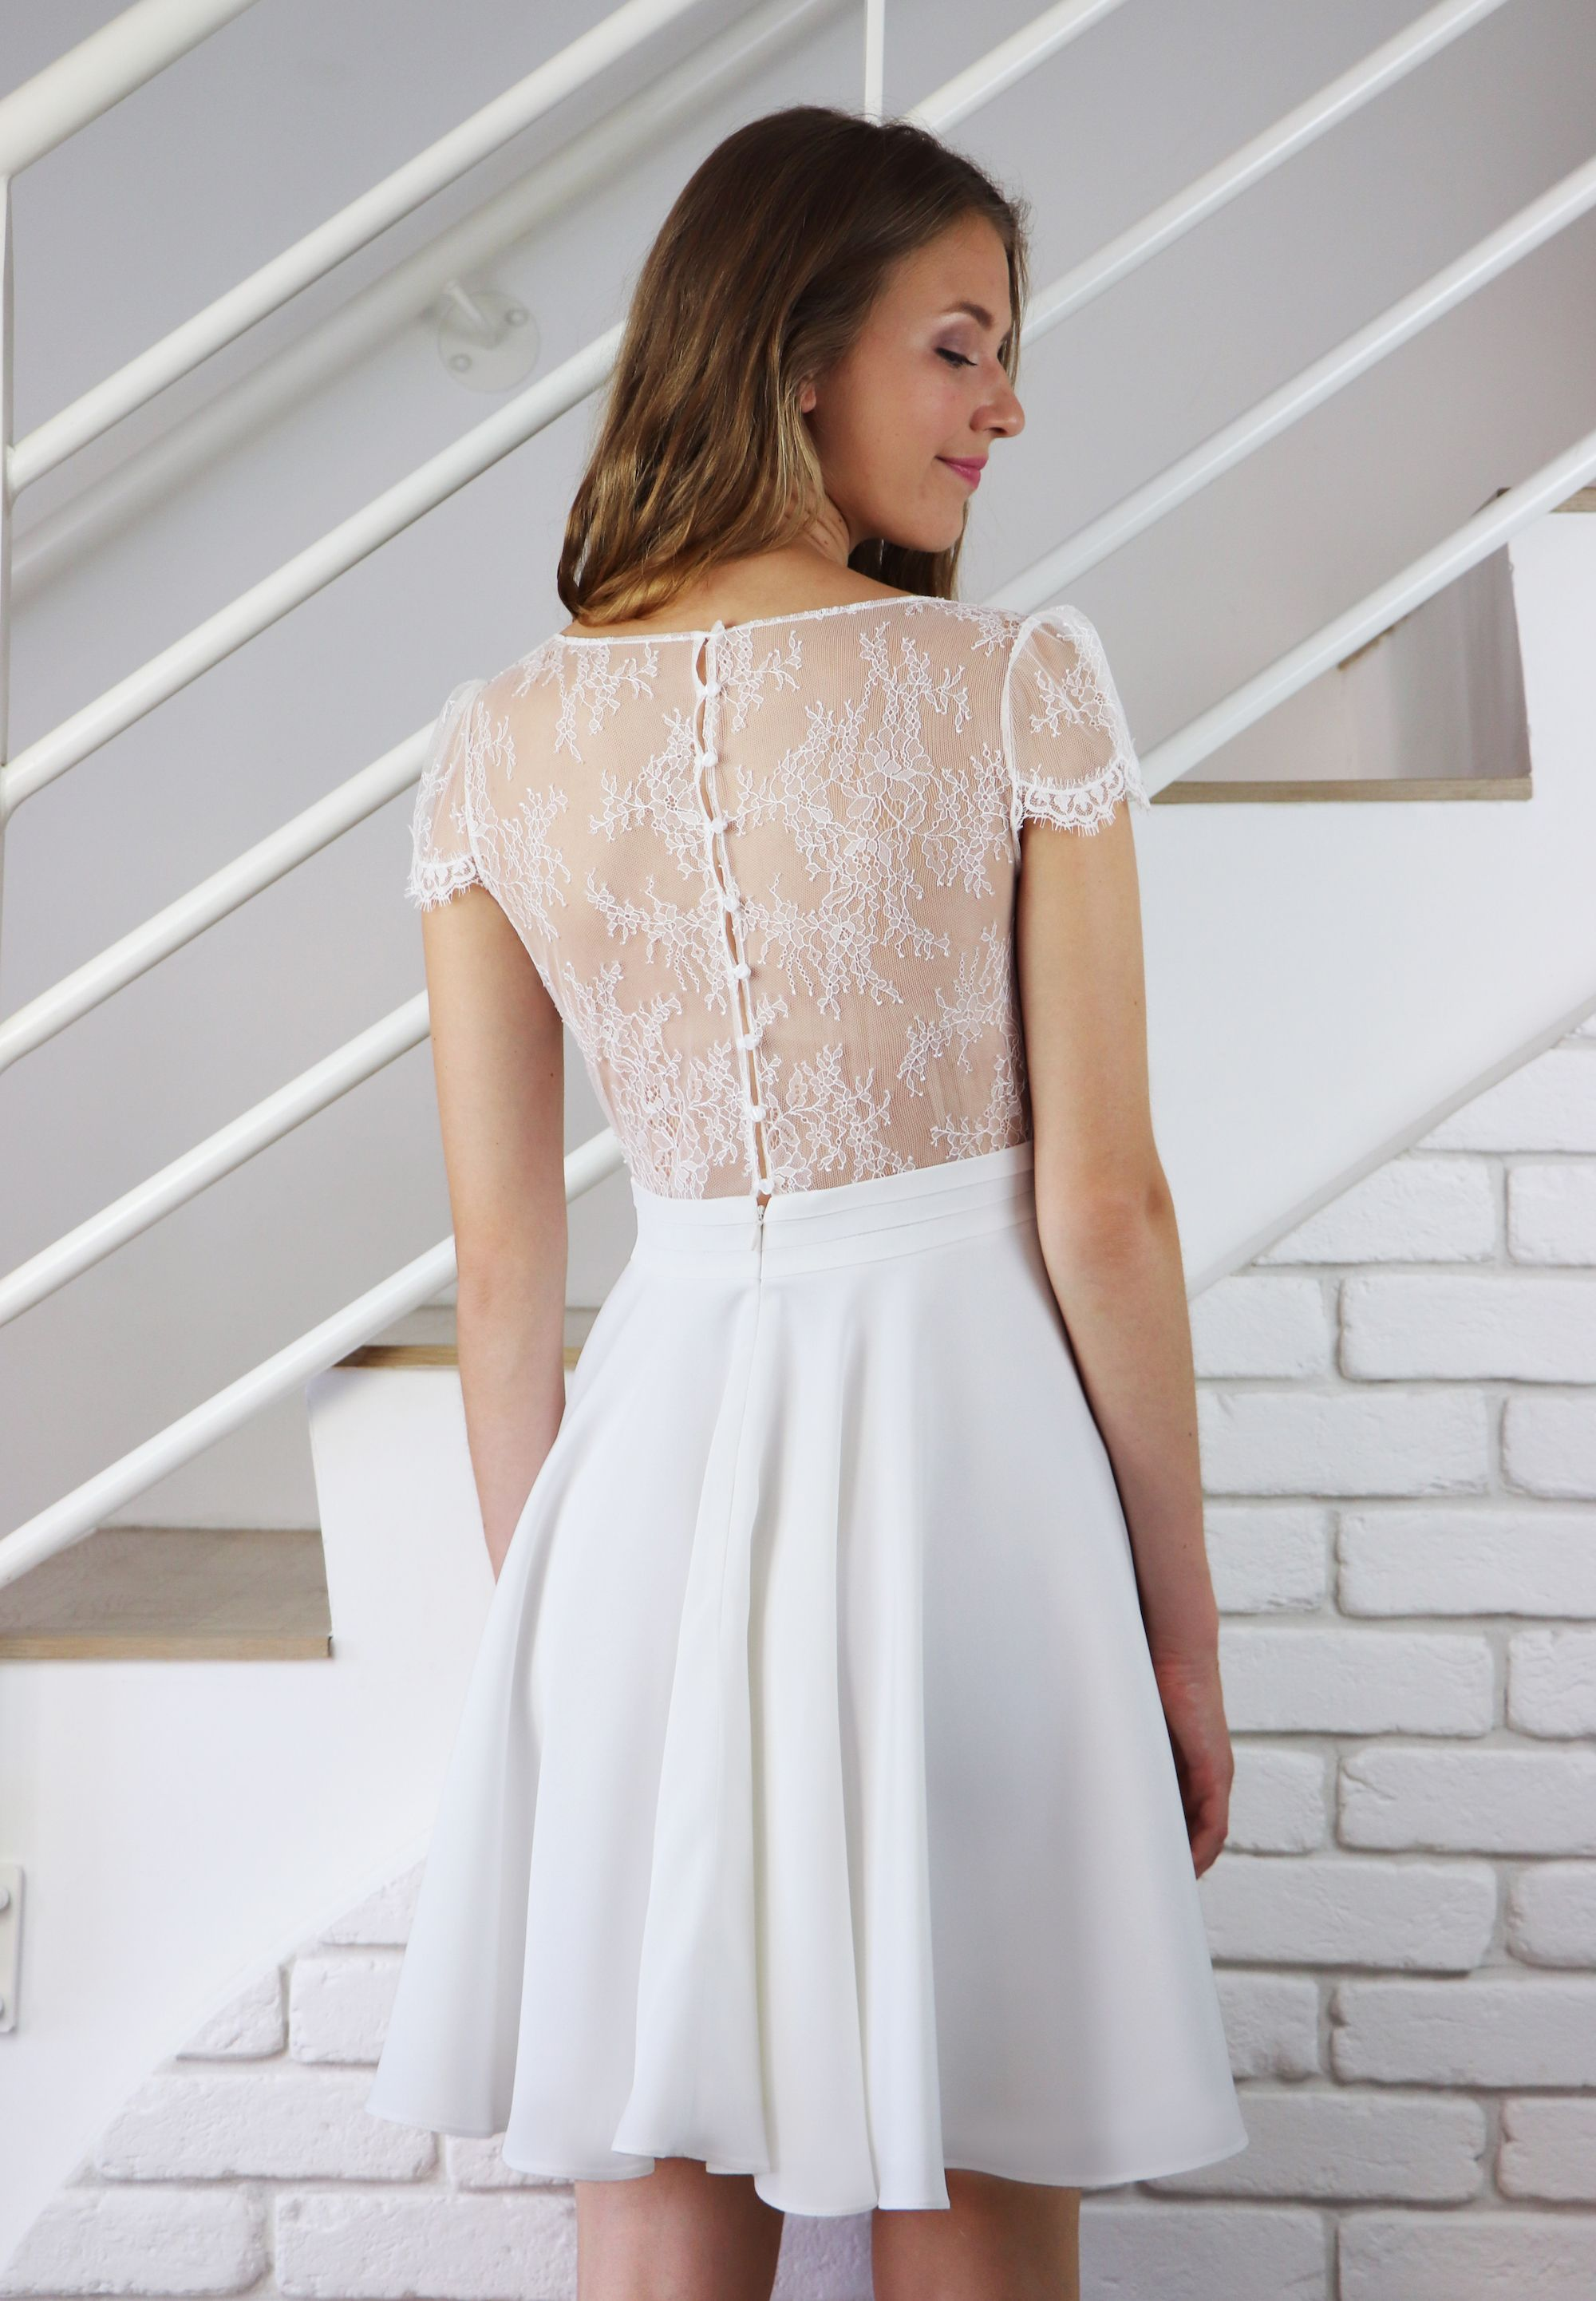 Épinglé par julia moreno sur wedding dresses en 2020 | robe